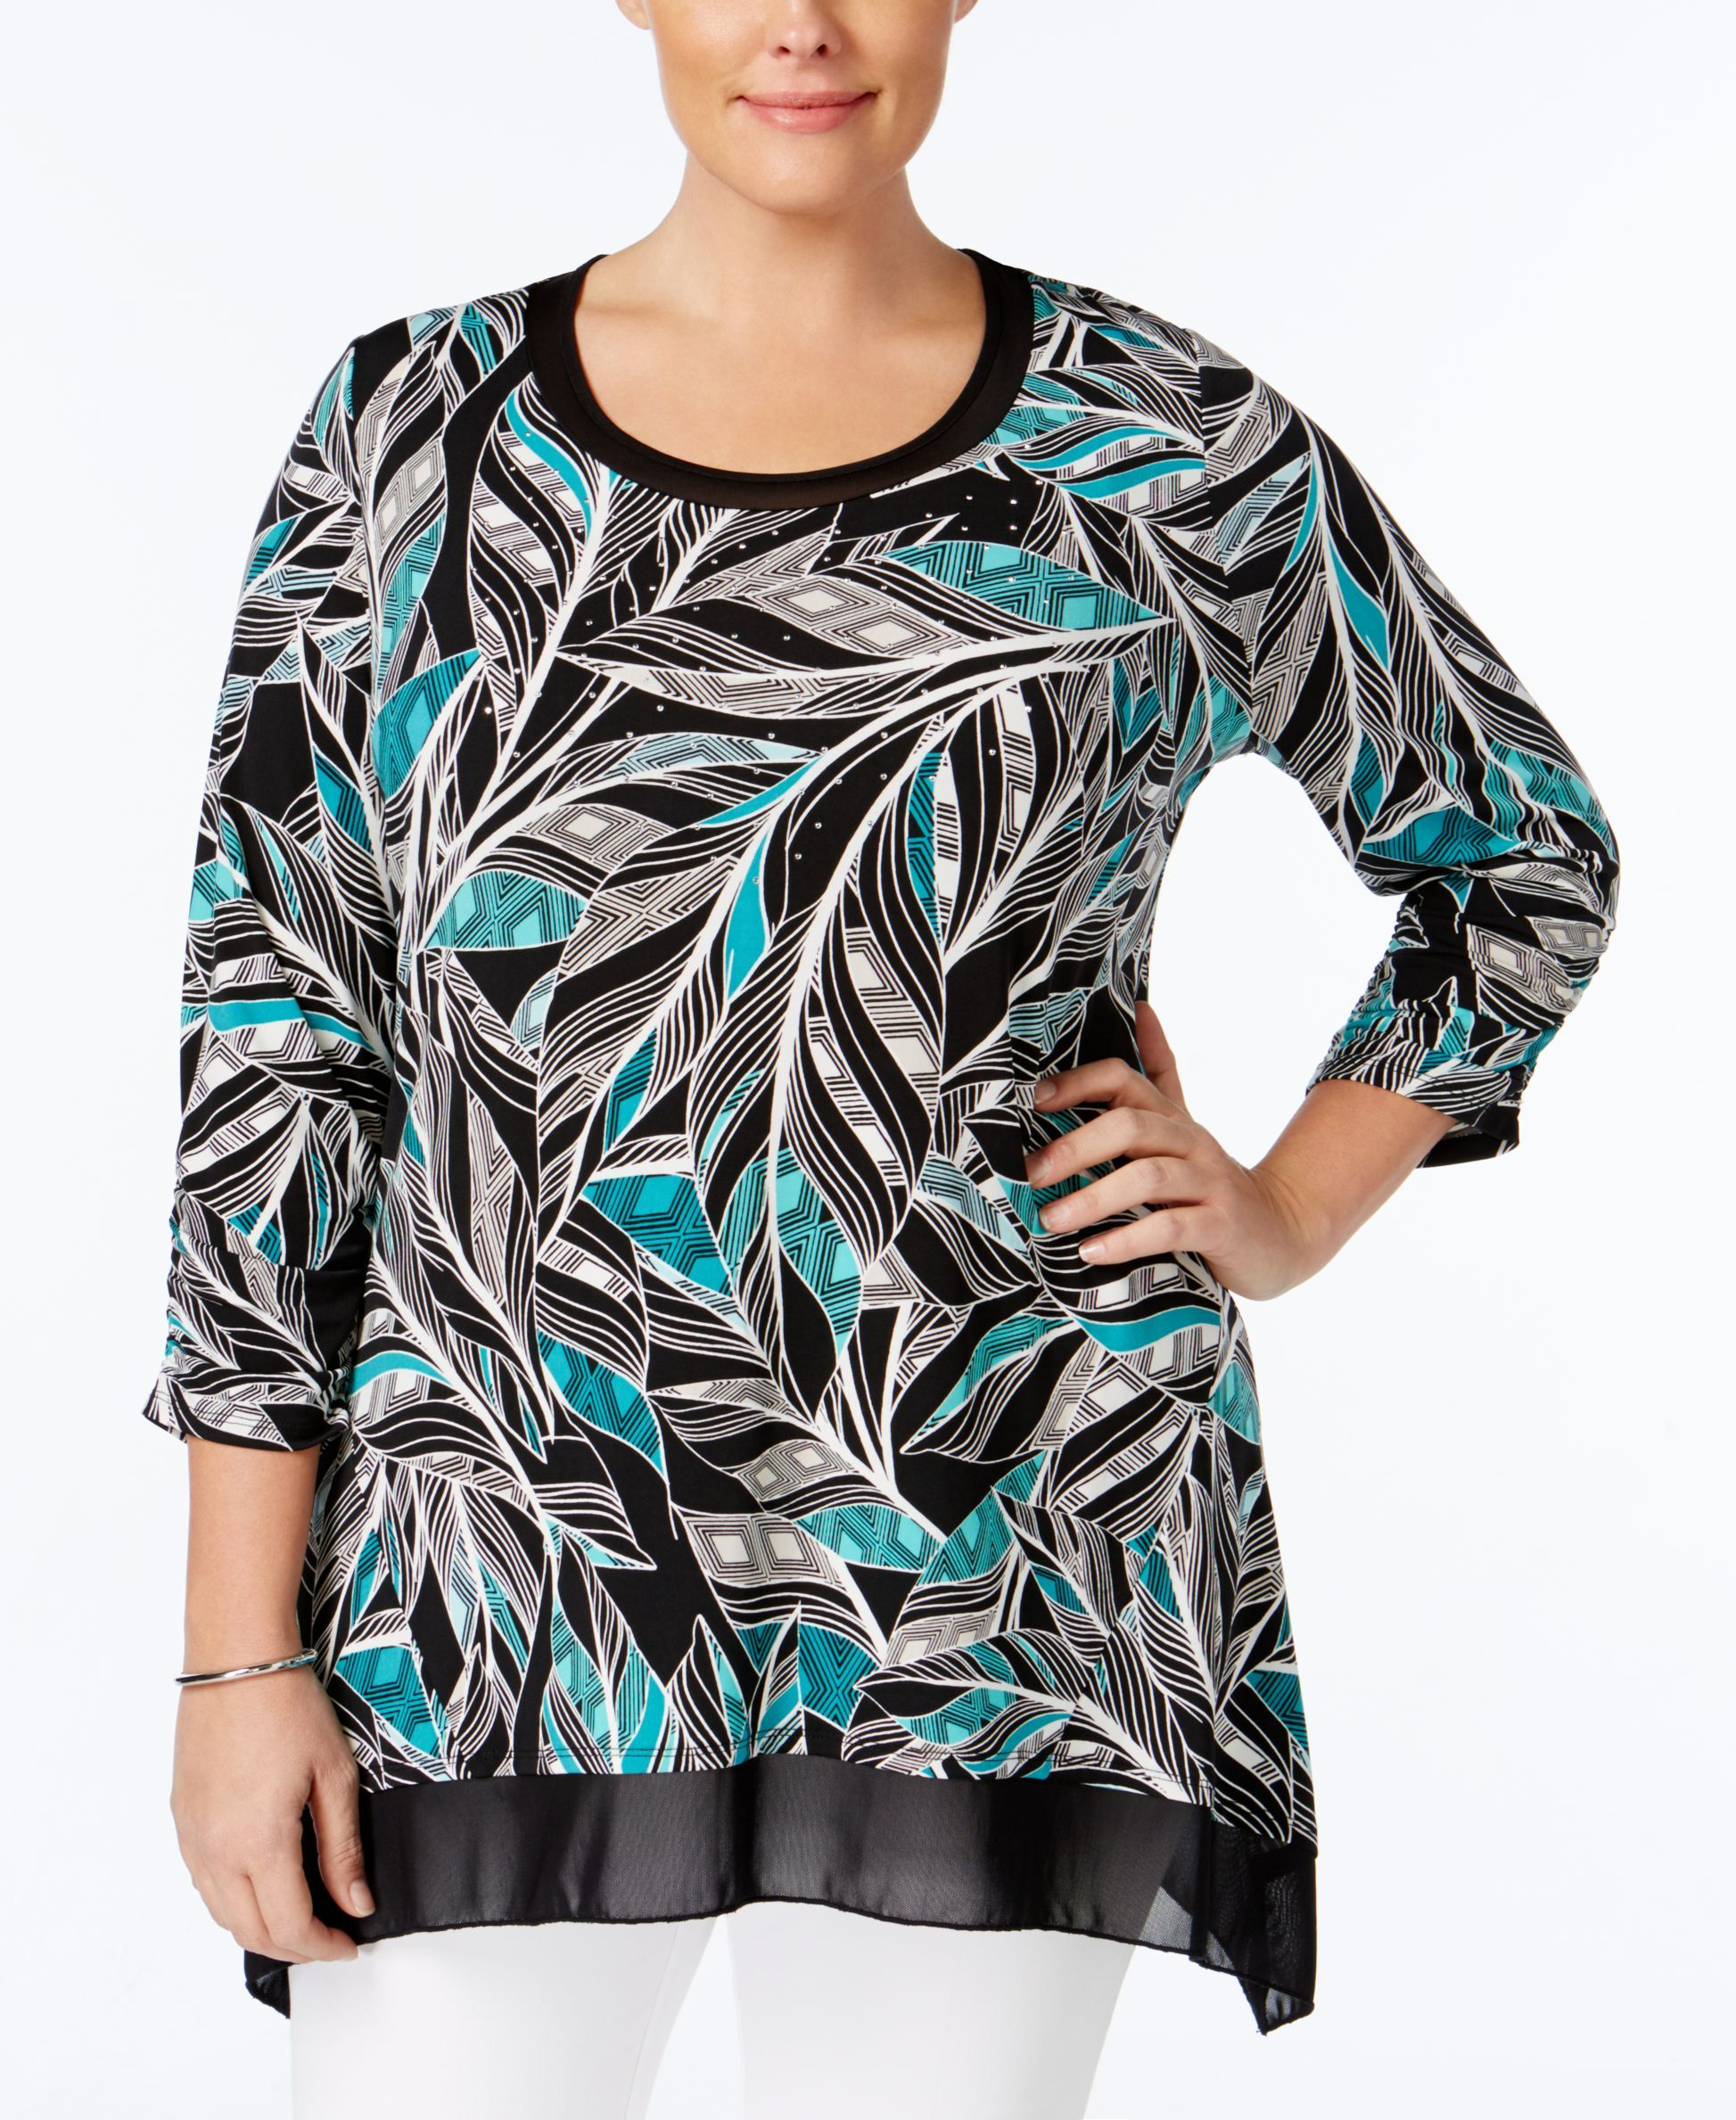 Jm Collection Plus Size Printed Embellished Handkerchief-Hem Top, Only at Macy's